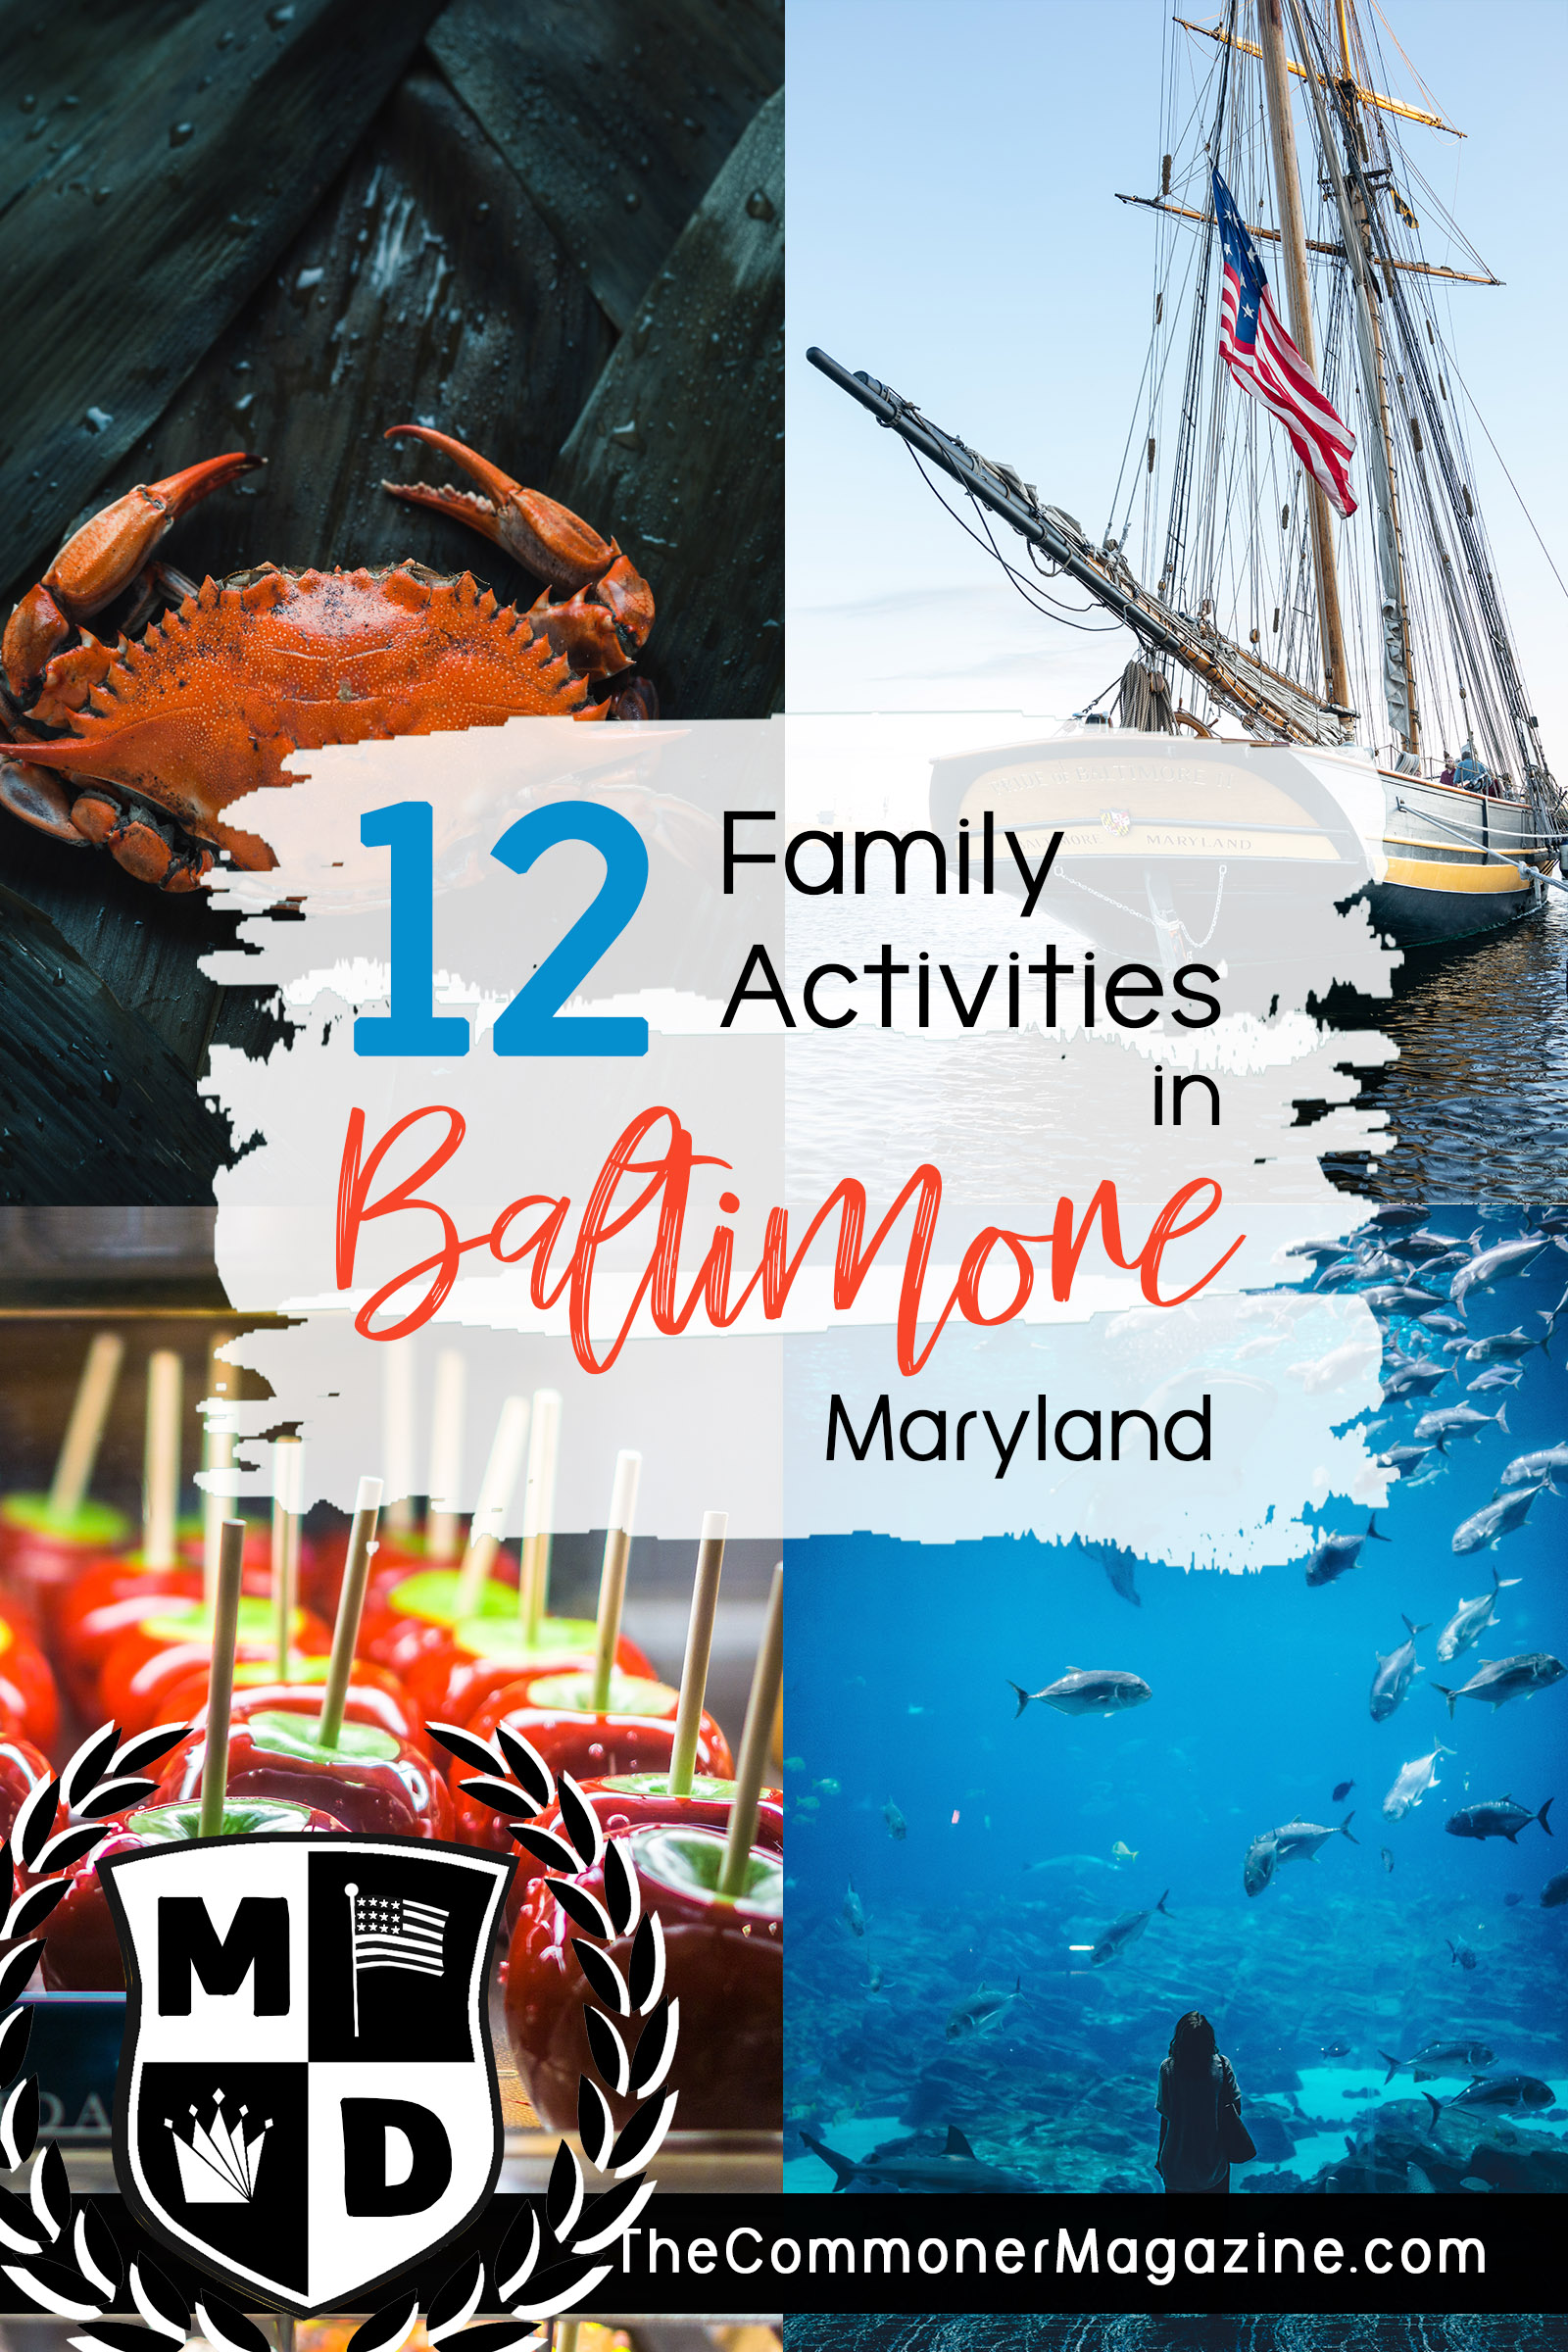 Looking for things to do in Baltimore? This is Part 2 of a series covering 12 fantastic, kid friendly activities for your next vacation to Charm City. From museums, the inner harbor and the National Aquarium, there's something to do in every season. The Commoner Magazine, full of USA travel tips from local experts. #Baltimore #Maryland #ThingstodoinBaltimore #Washingtondaytrips #DCdaytrips #USAtravel #Familytravel #travelwithkids #kidsactivities #USAeastcoast #eastcoasttravel